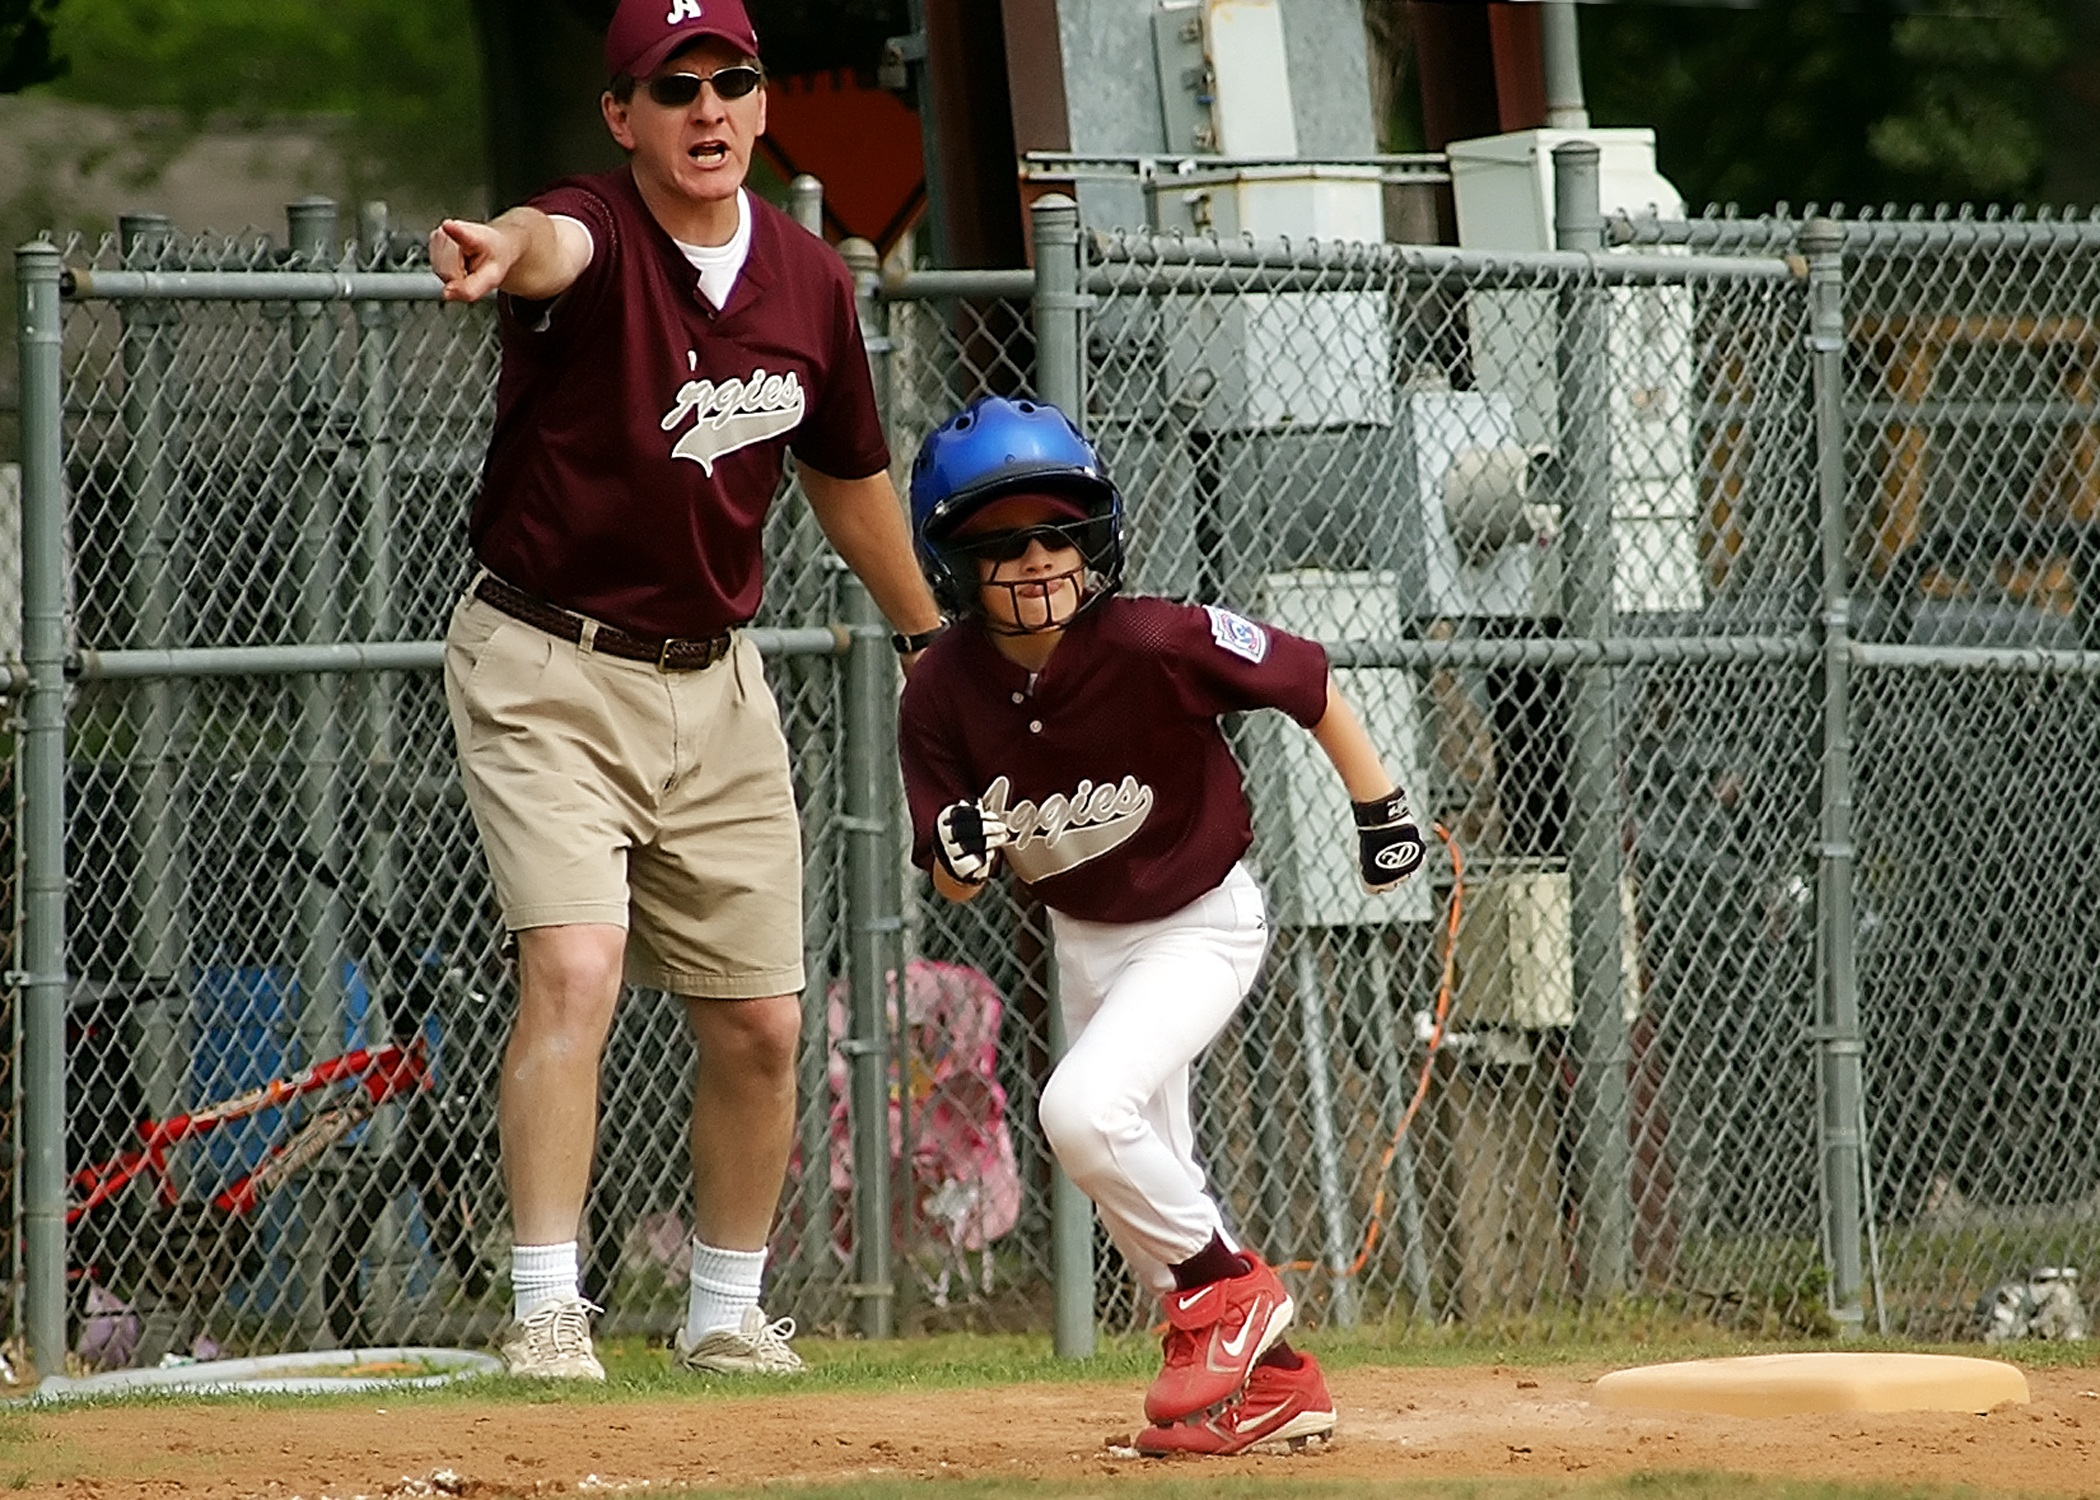 Baseball player running between bases in agame